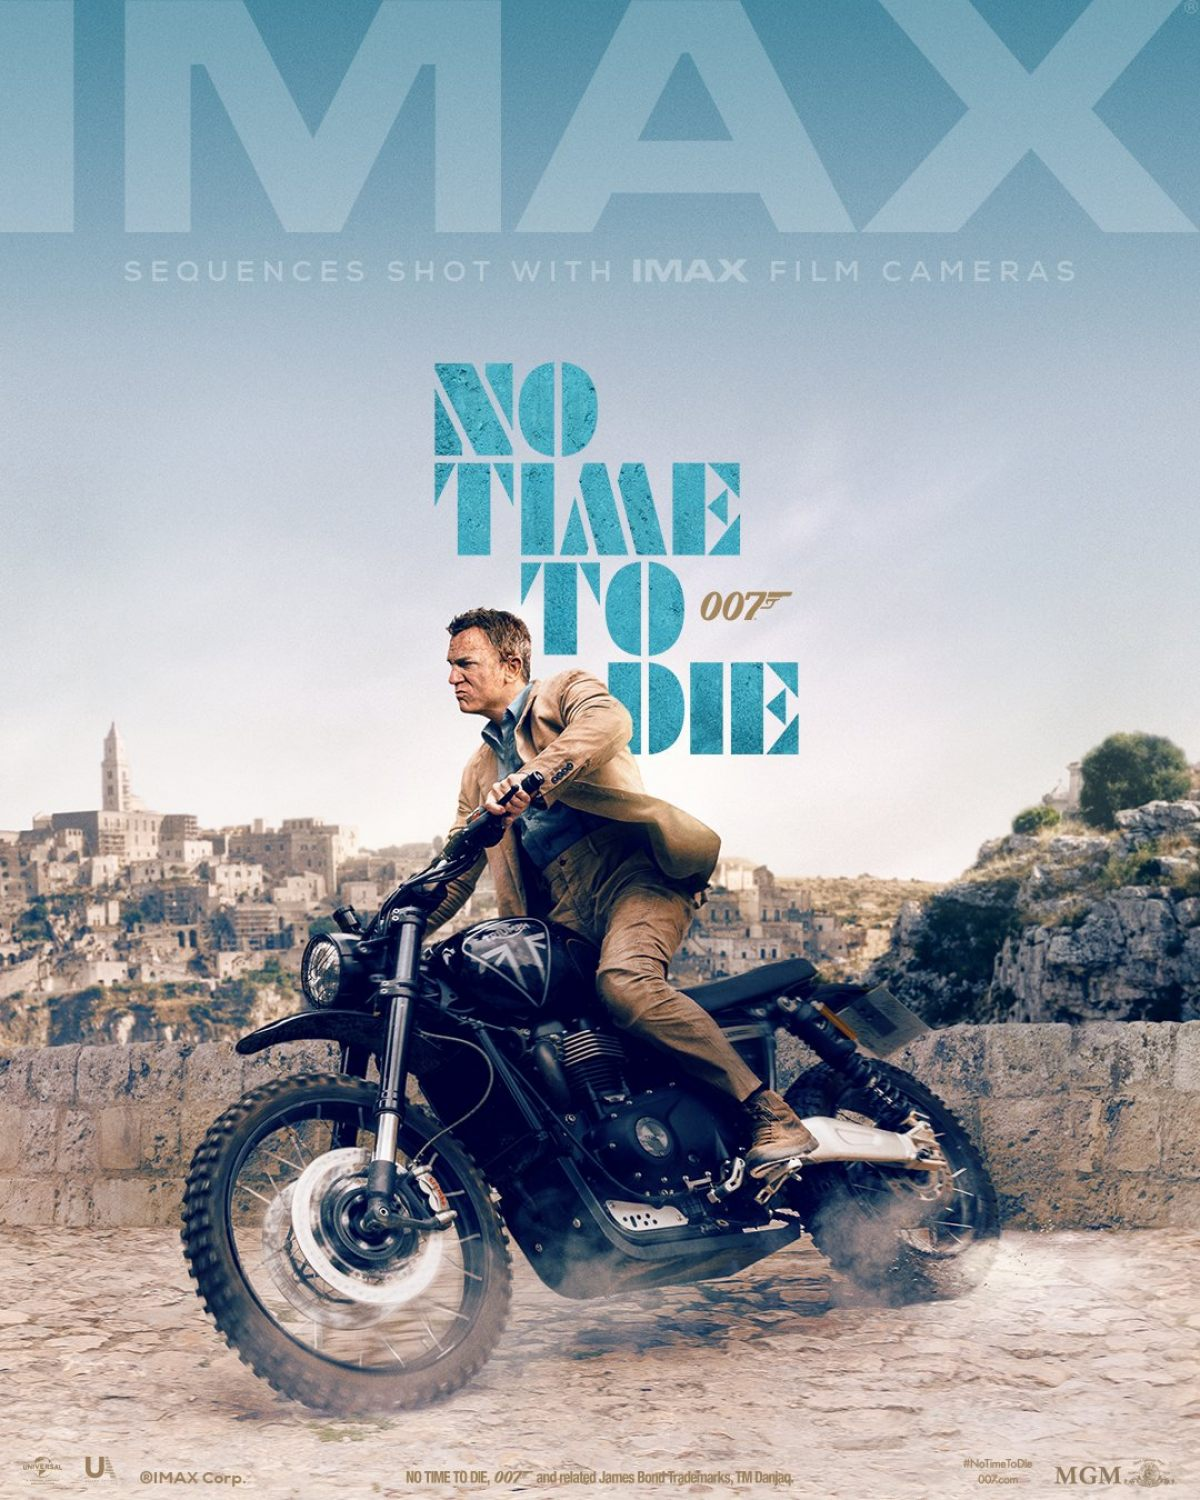 No-Time-To-Die-IMAX-Poster_1200_1500_81_